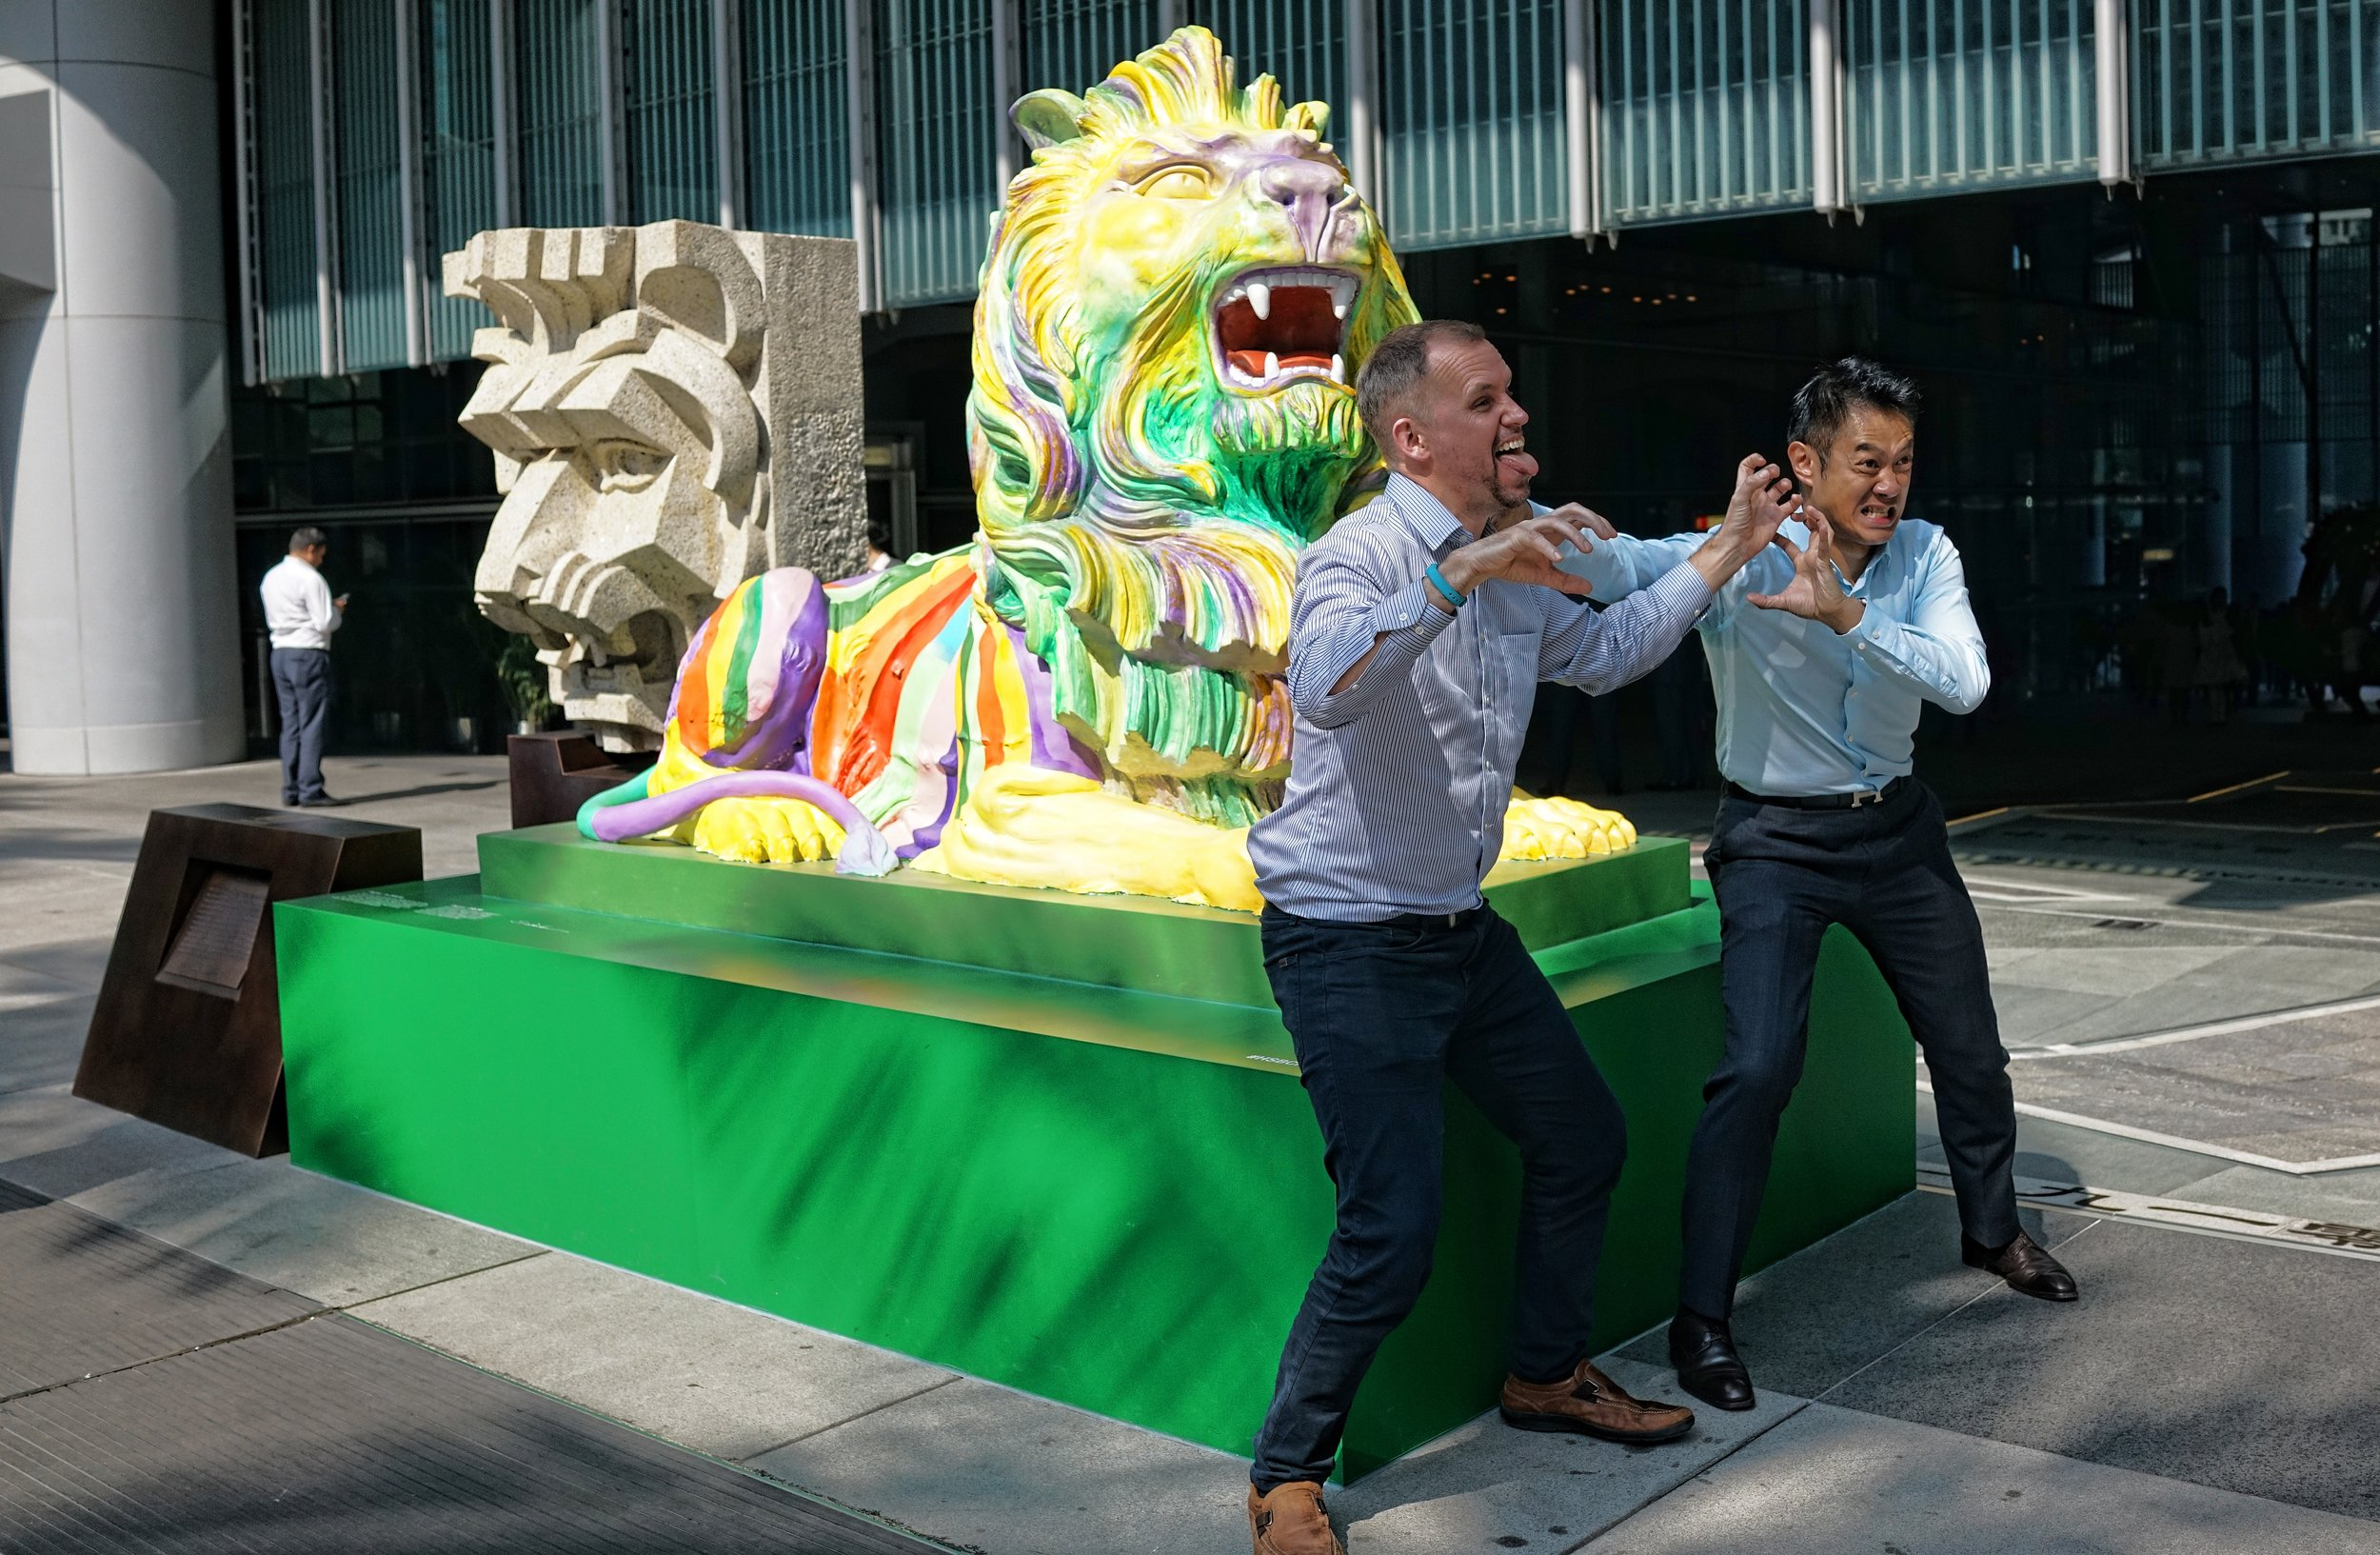 The LGBT Lions at HSBC Hong Kong headquarters with a couple of employees going a bit daft... the Lions have certainly caused a bit of a stir in a very conservative Hong Kong.